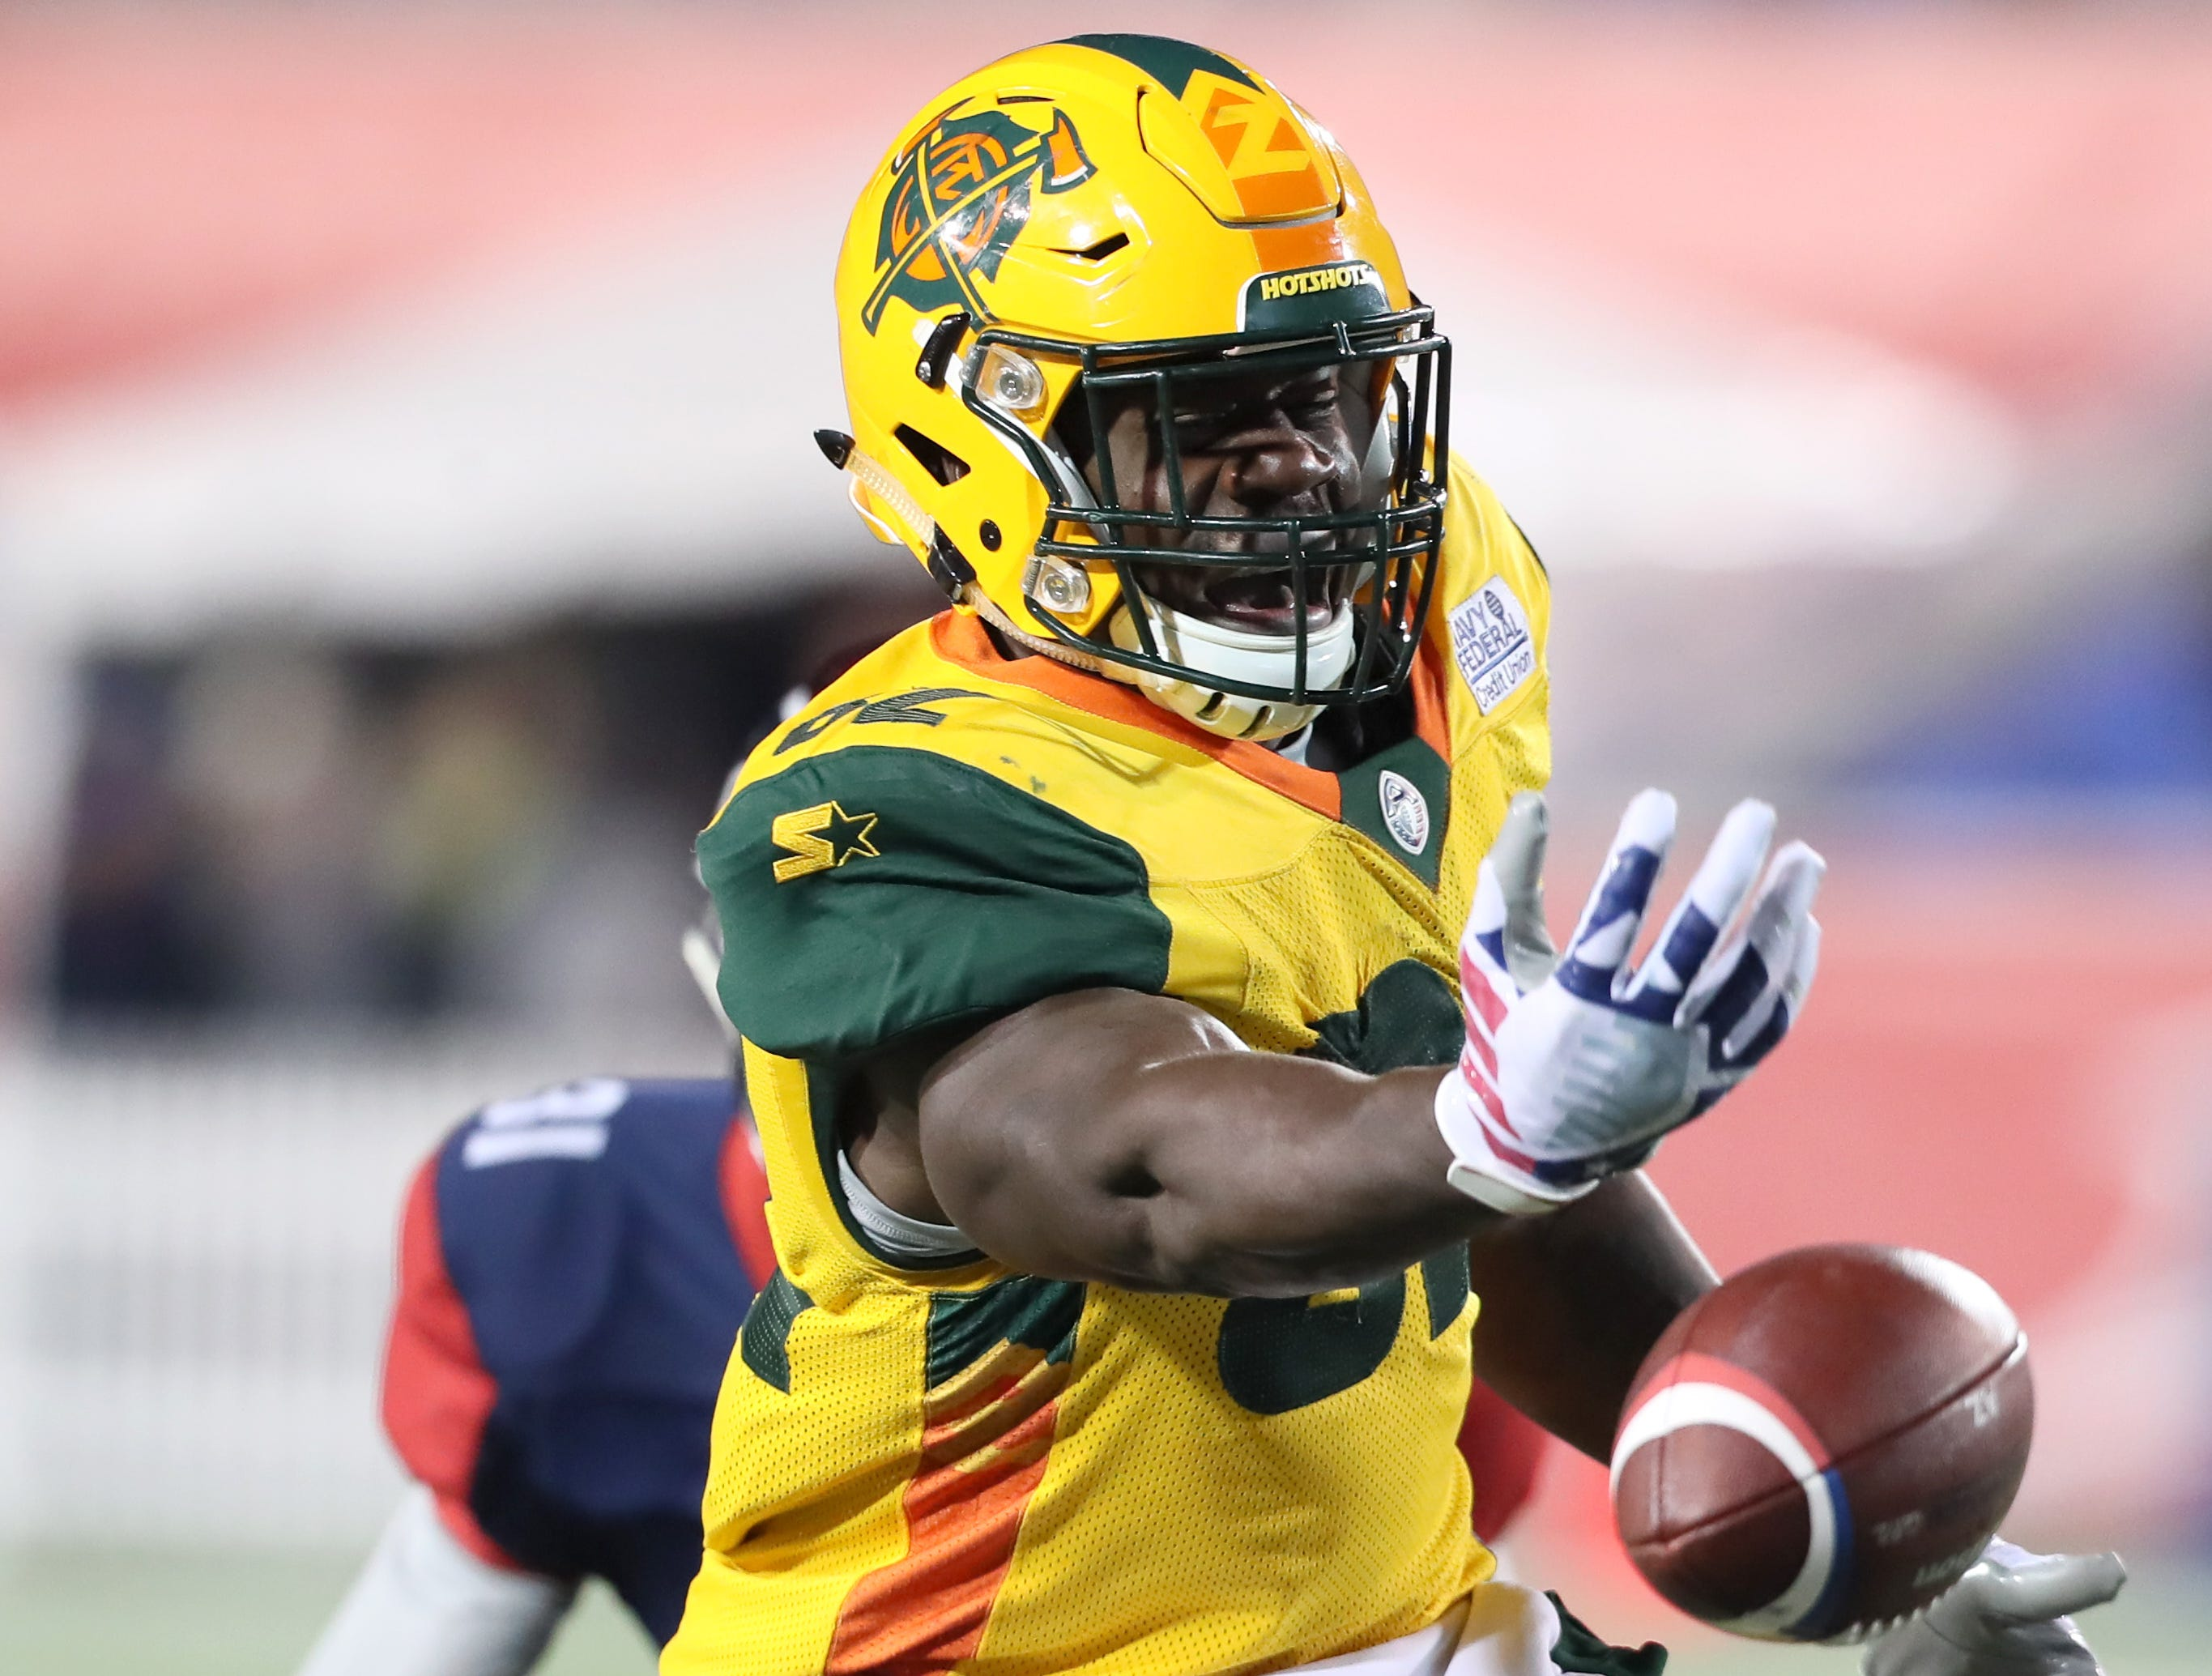 Arizona Hotshots tight end Gerald Christian drops a pass against the Memphis Express during their game at the Liberty Bowl on Saturday, Feb. 16, 2019.